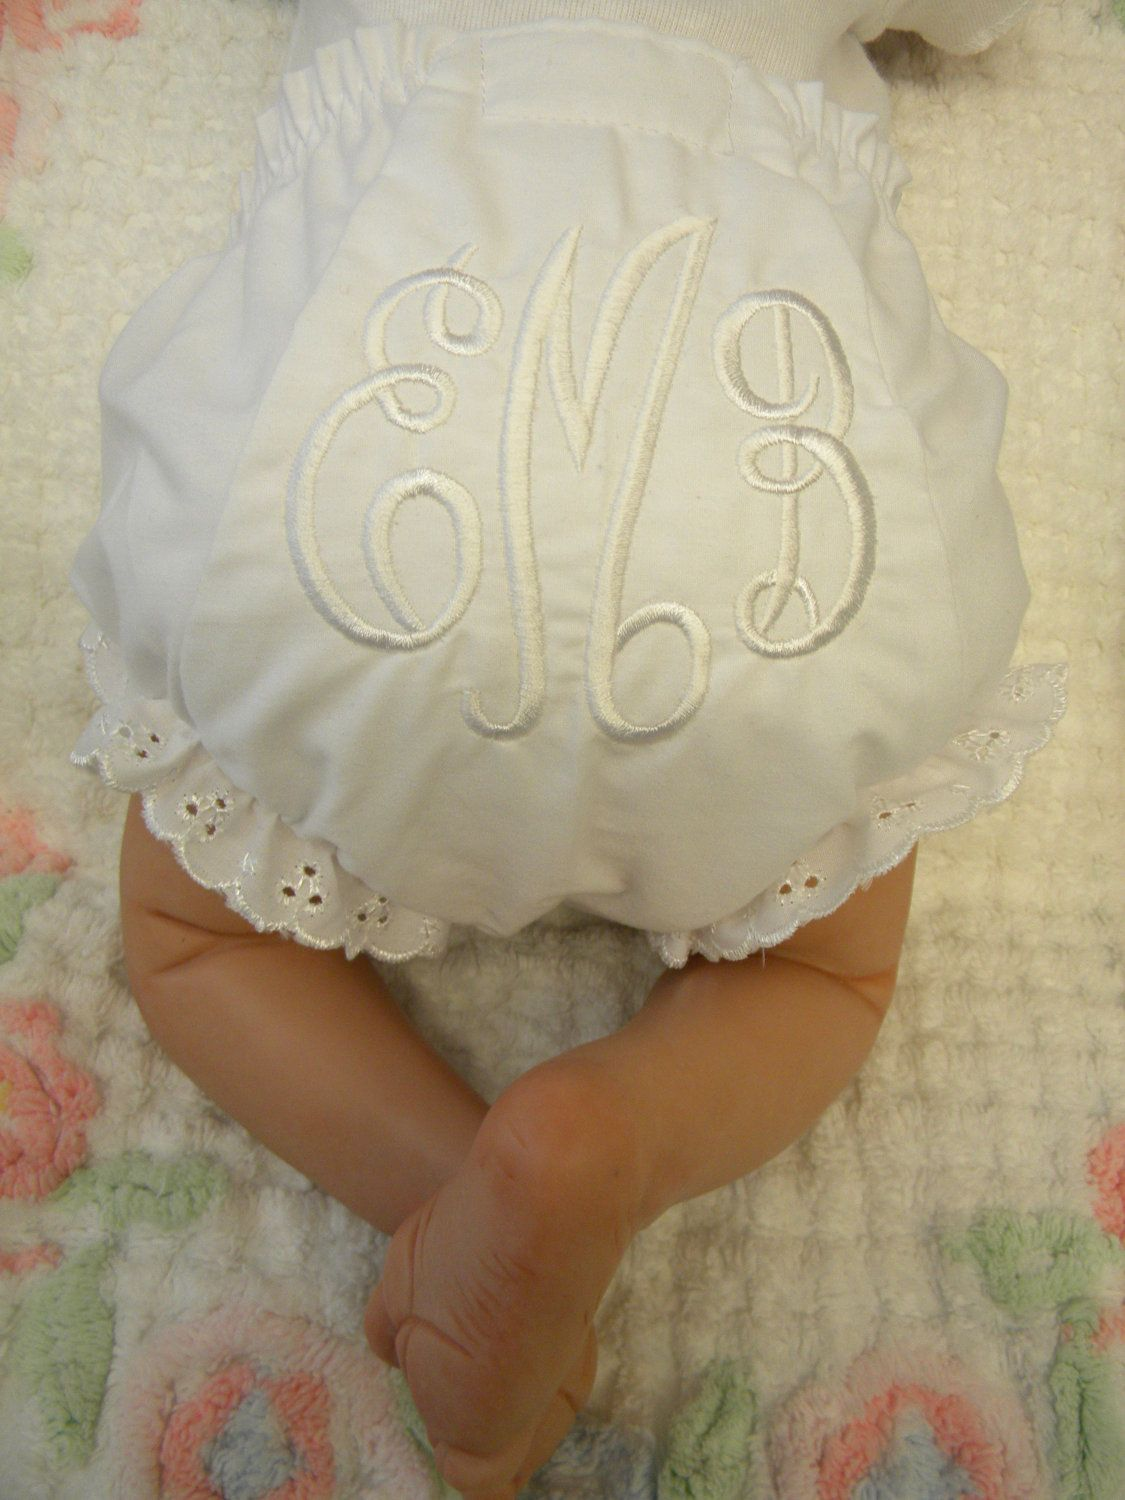 PANTY BLOOMER DIAPER Cover Monogrammed Personalized. $18.99, via Etsy. For baby Brennan!